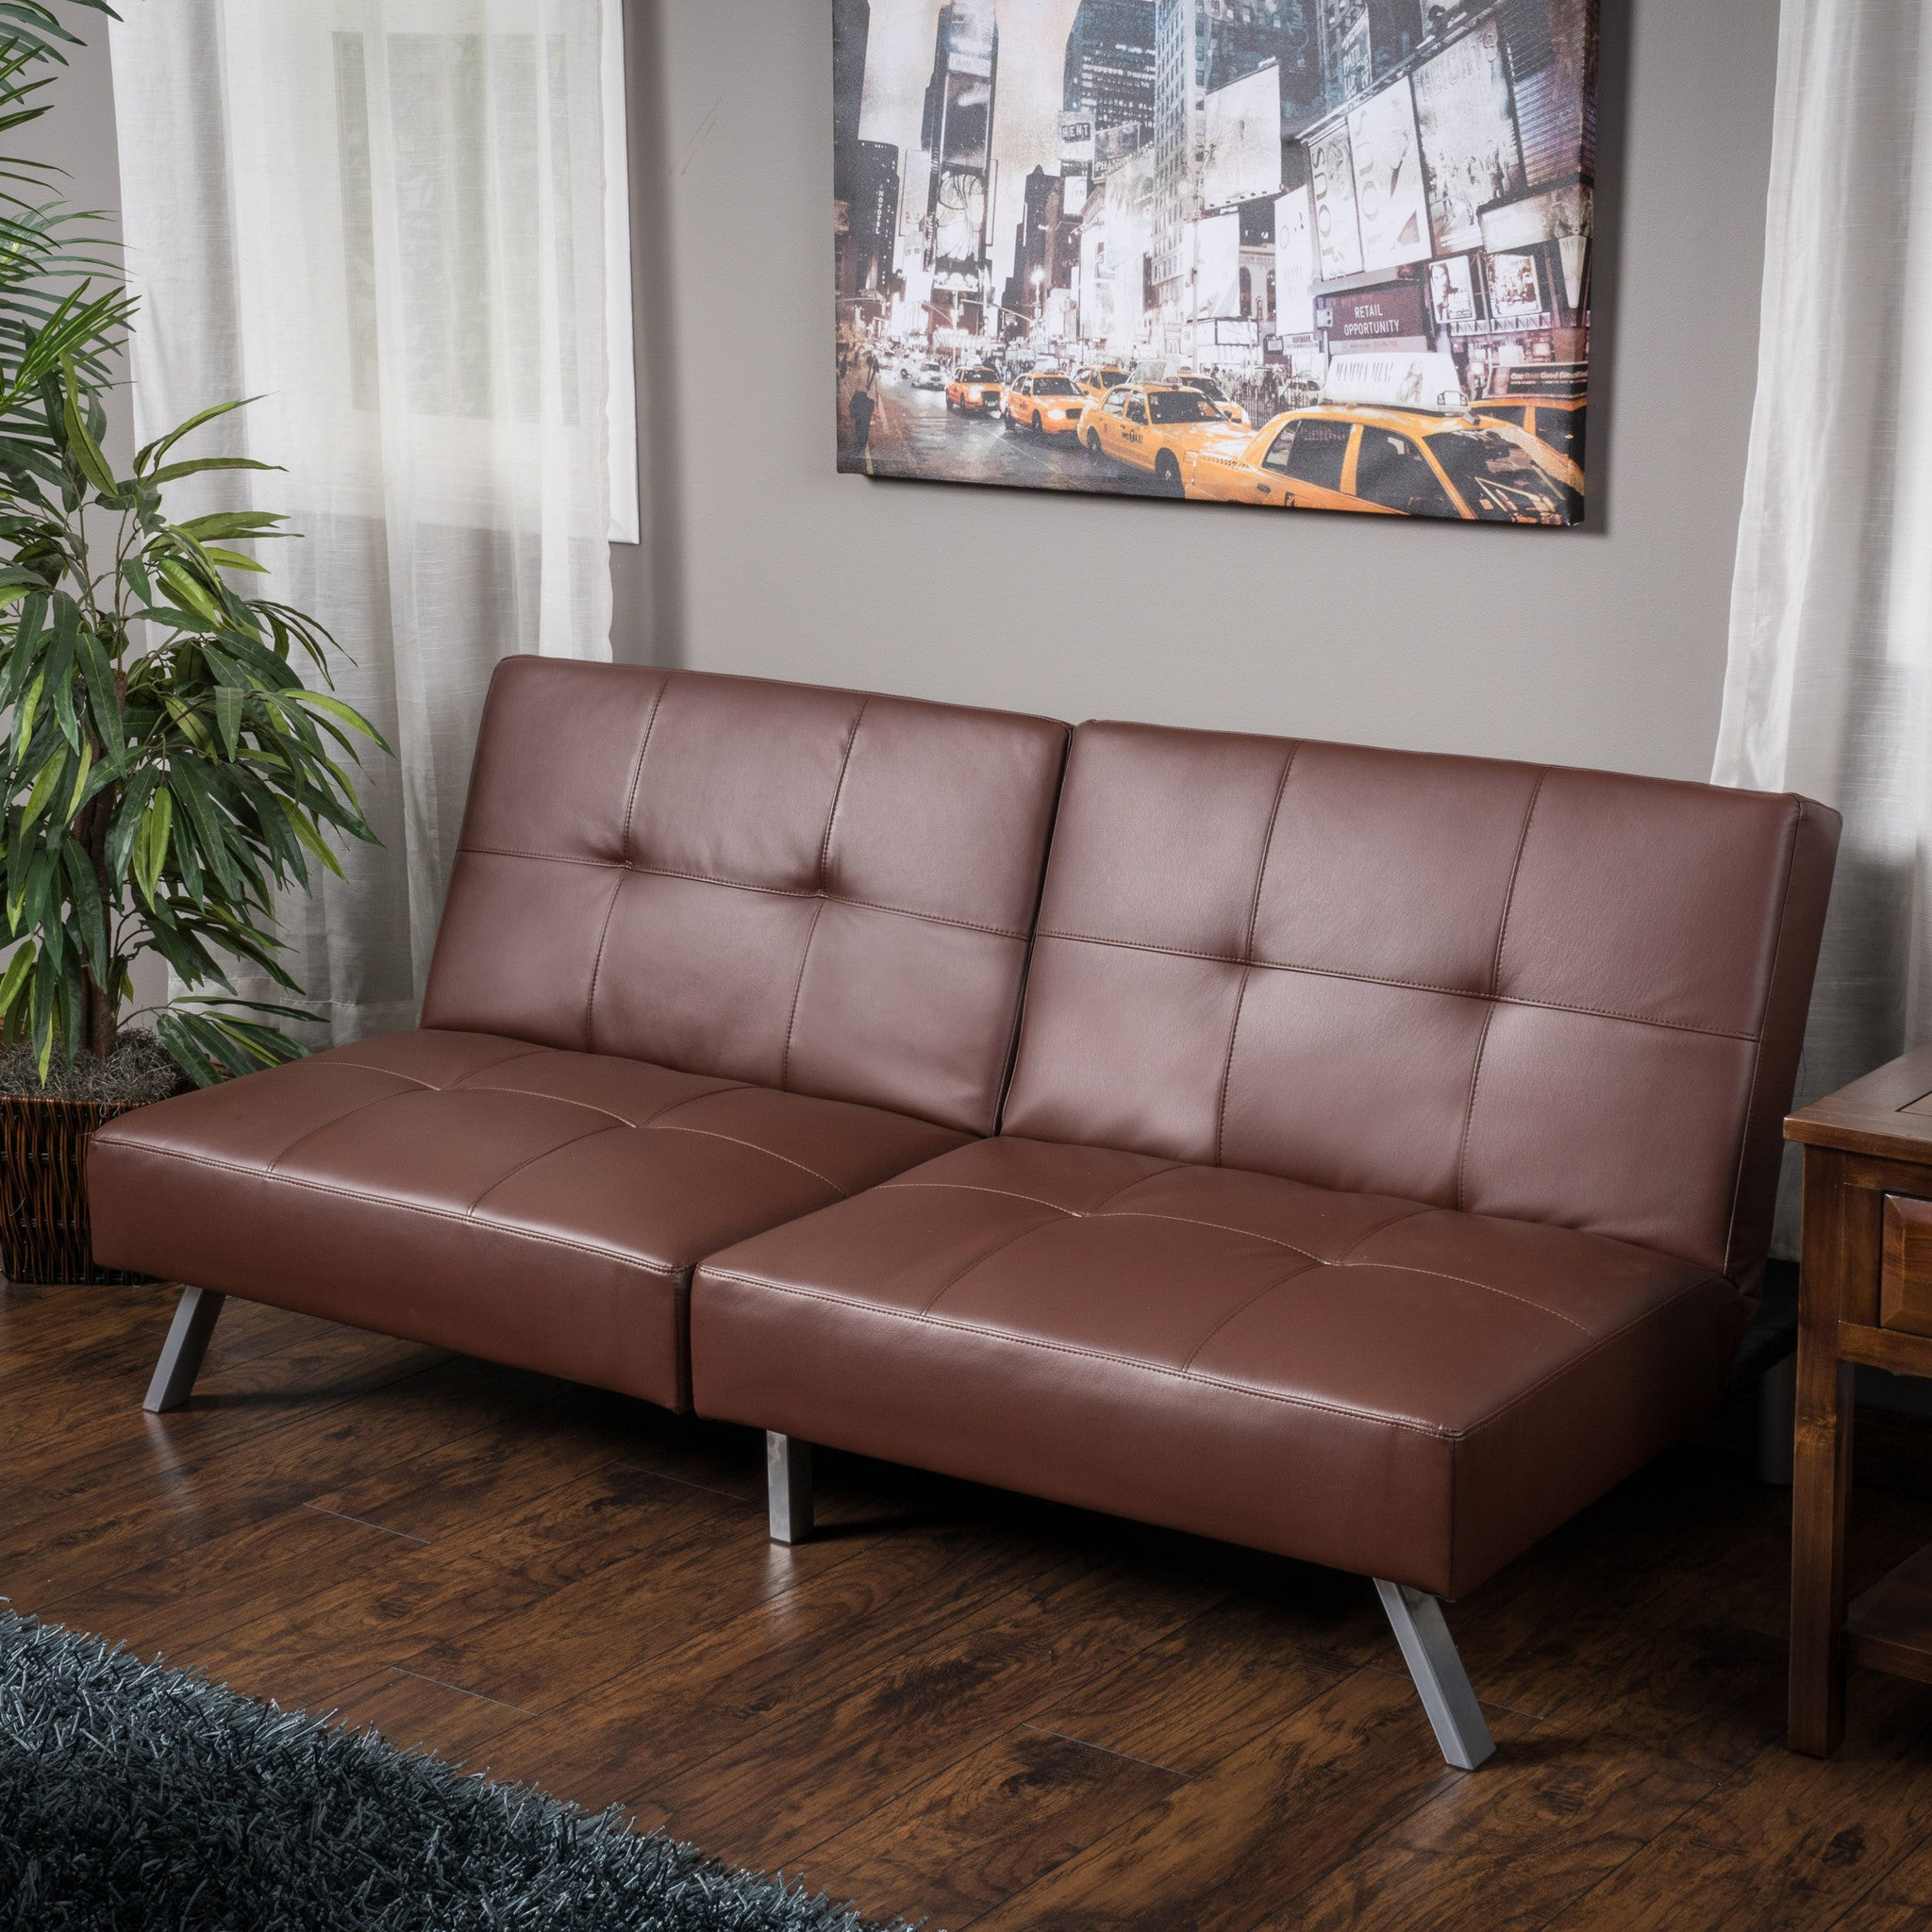 Two Loveseats In Living Room Sofas Loveseats Great Deal Furniture Canada